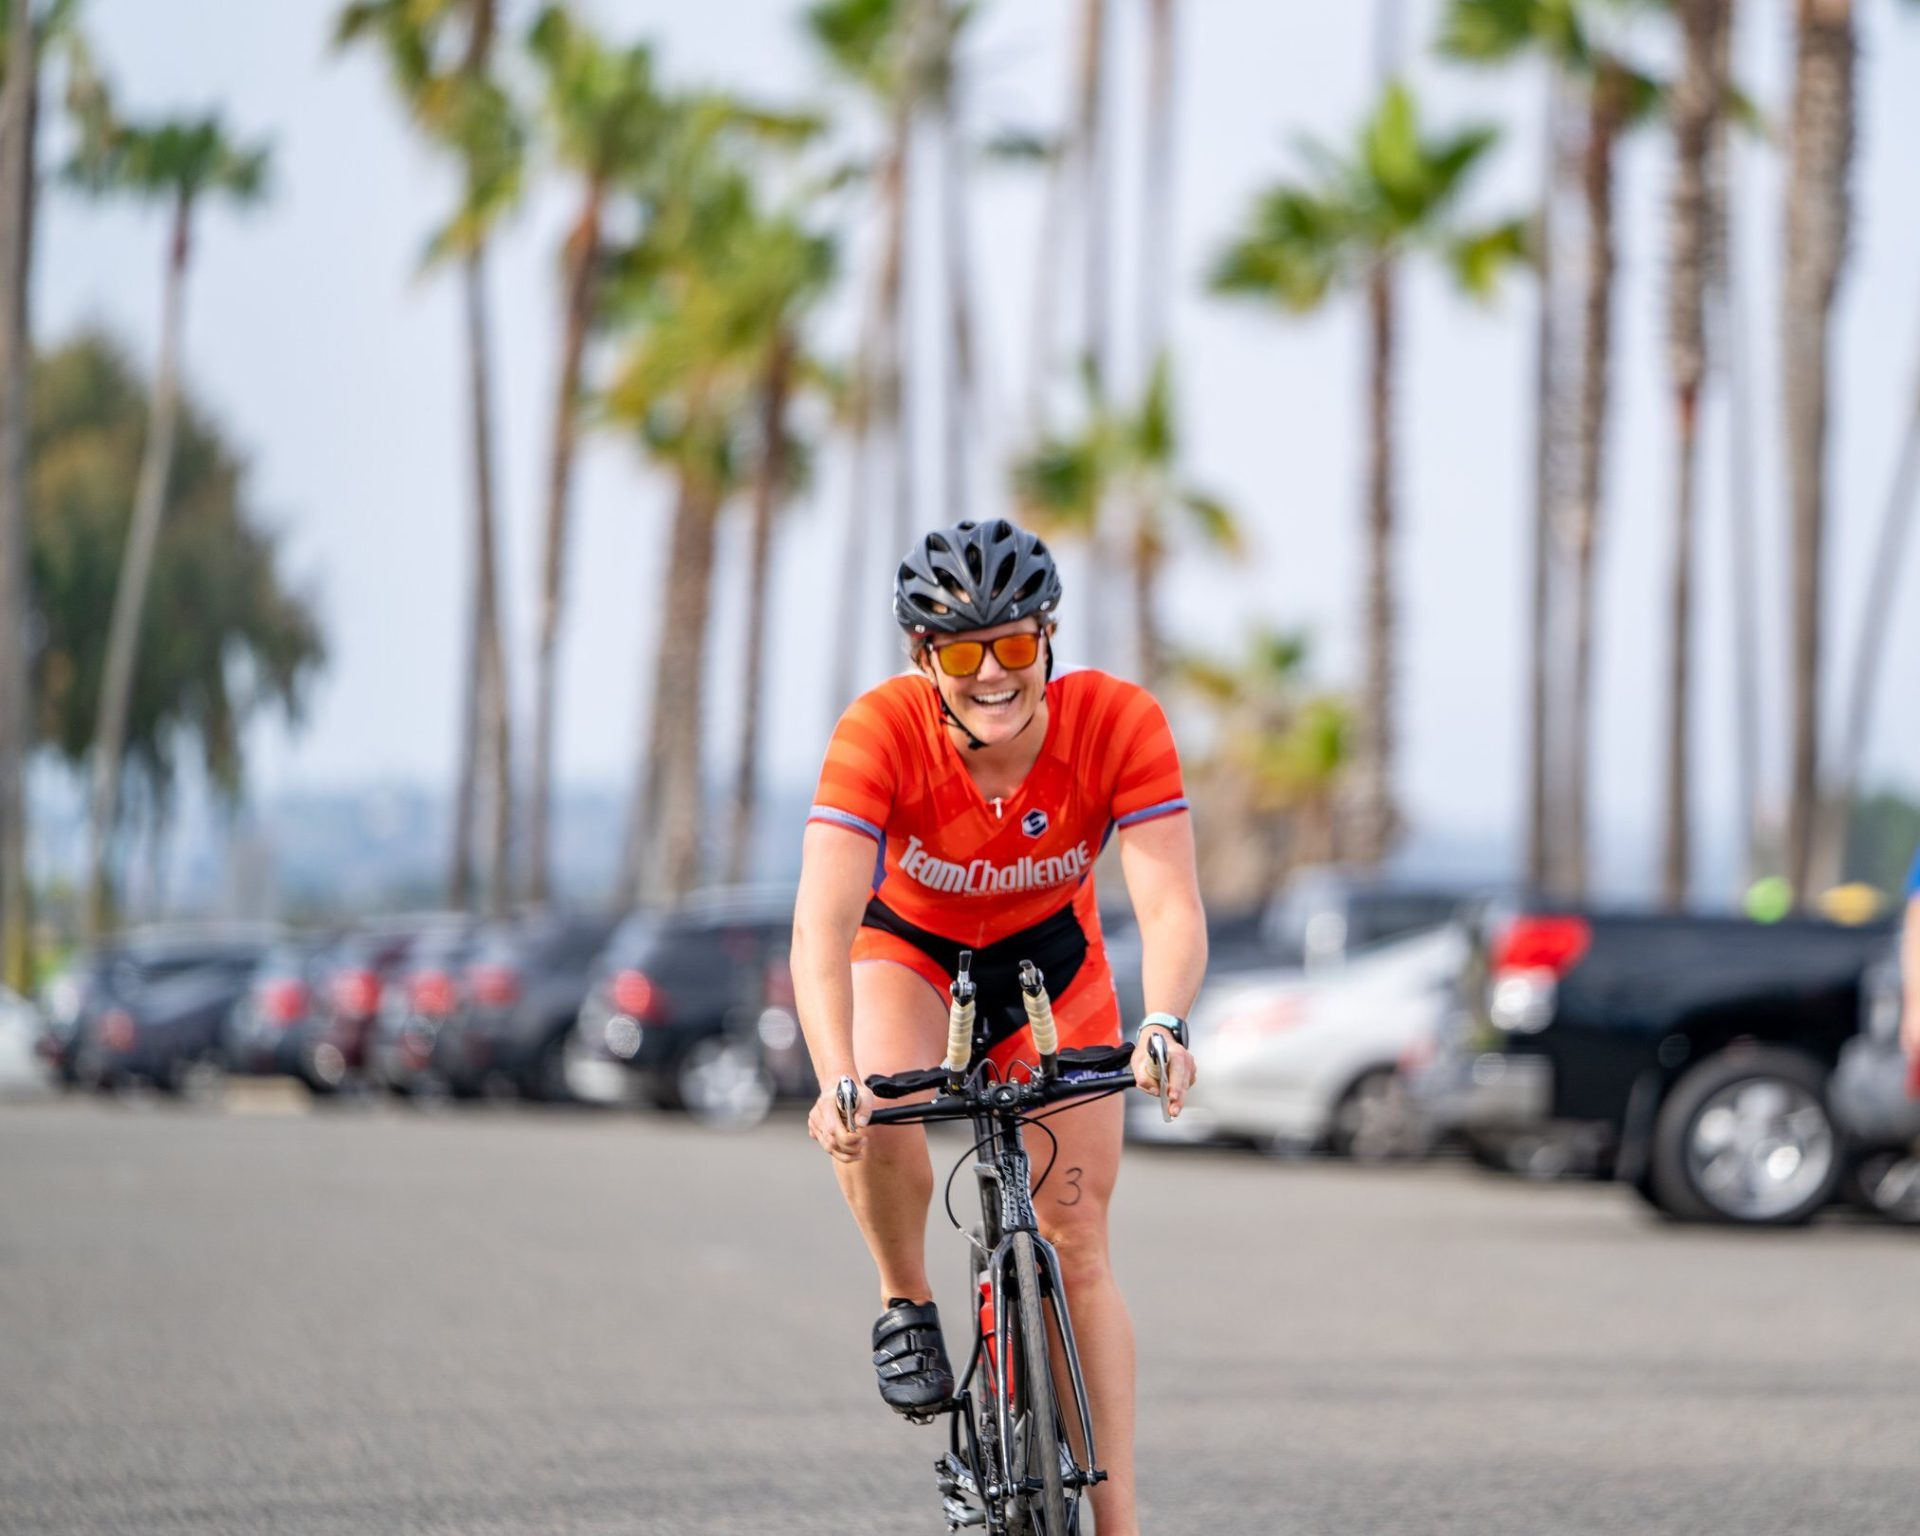 SDLC Ambassador Mel Bartow reflected on her own San Diego journey. Exploring San Diego and our biking trails.